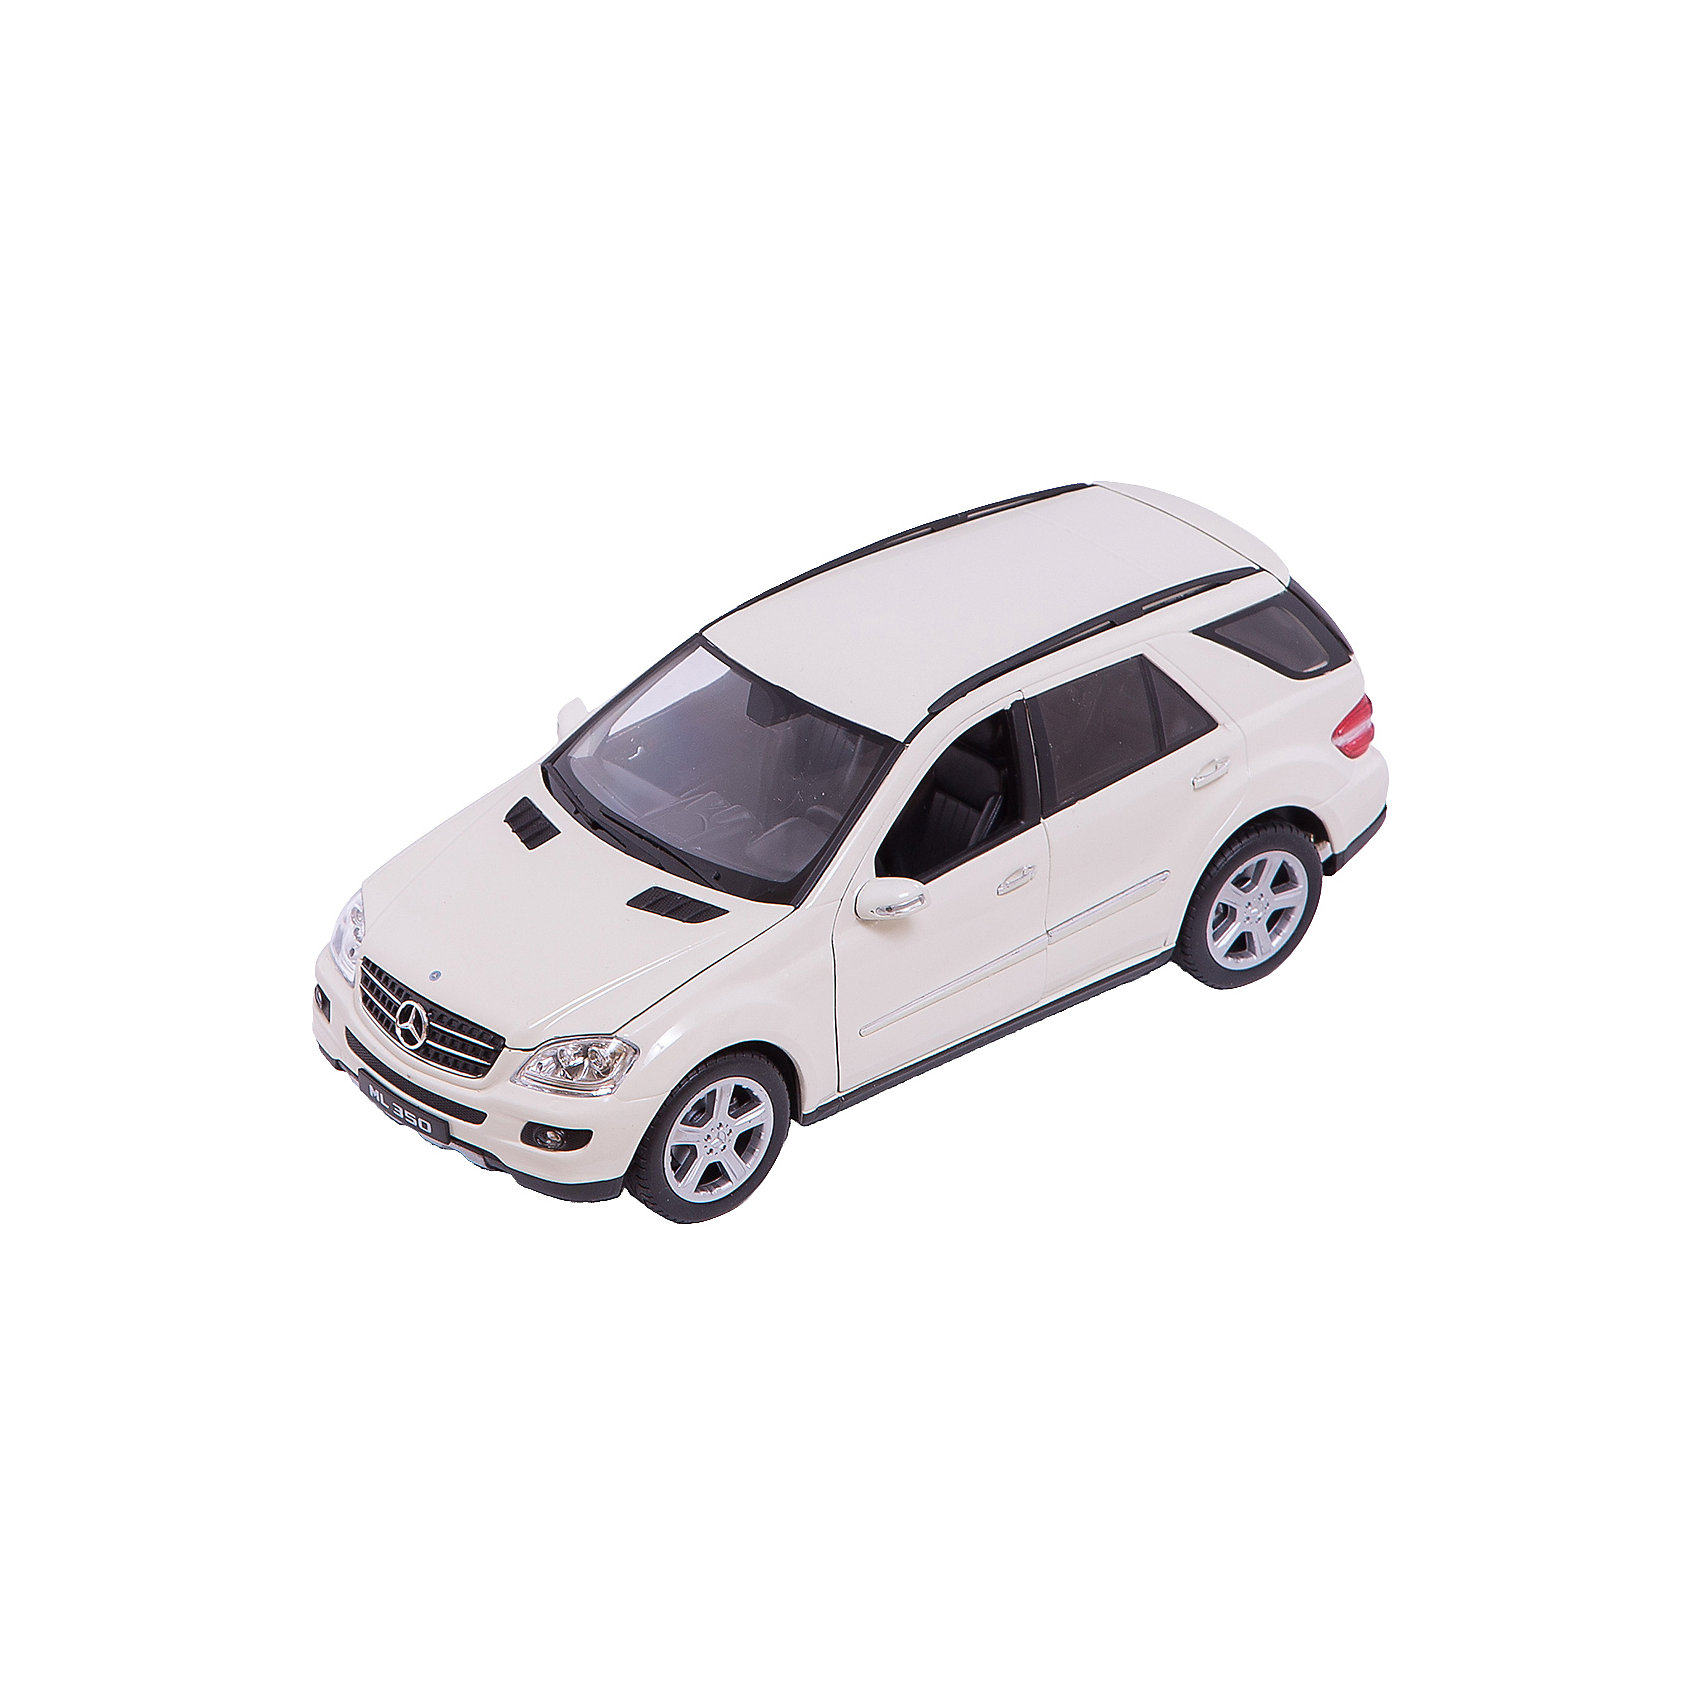 Welly ������ ������ 1:18 Mercedes-Benz ML350